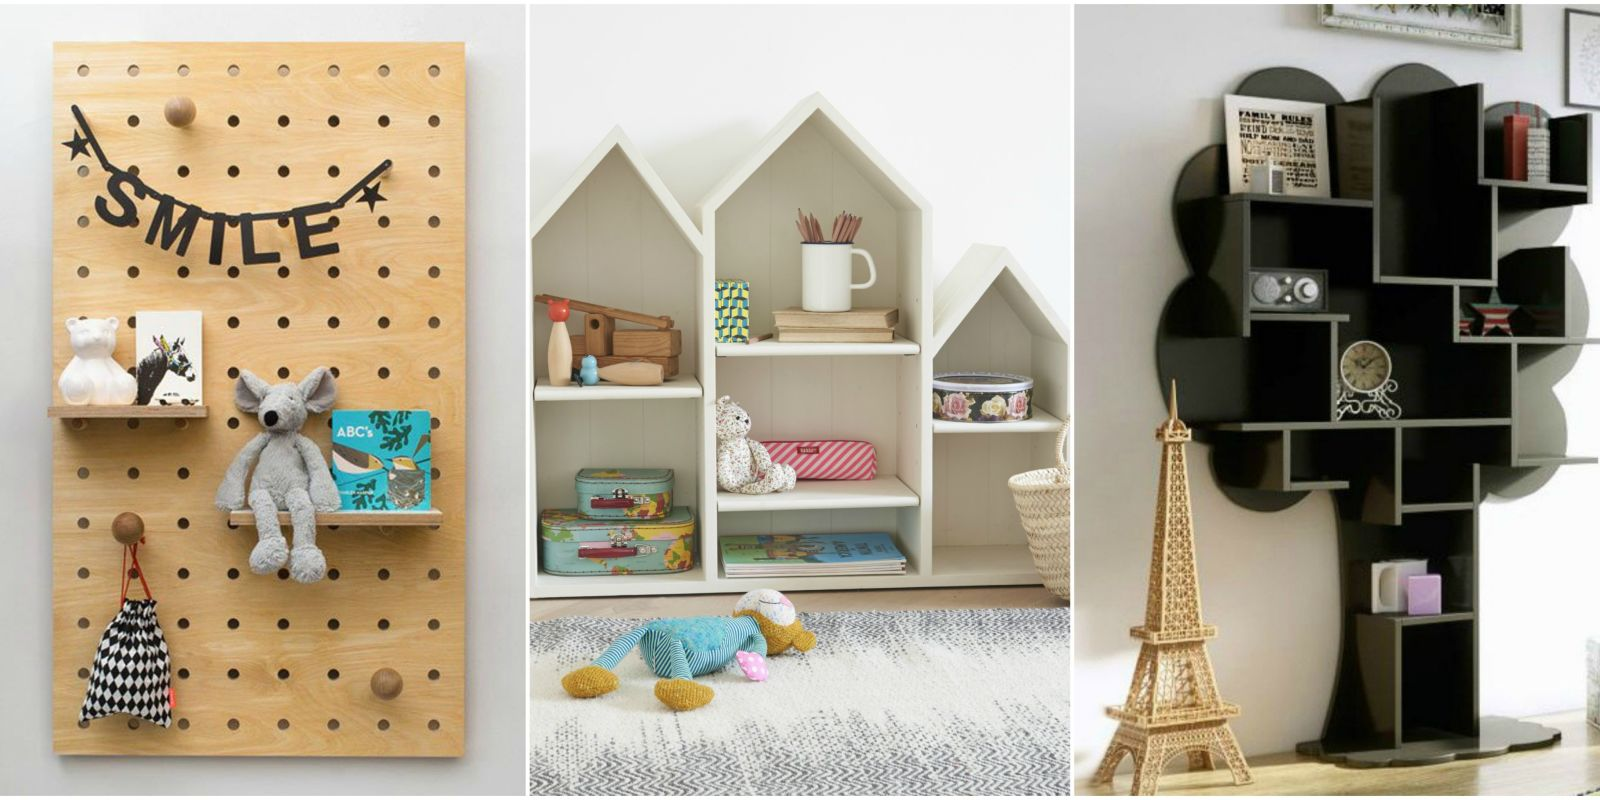 10 Children 39 S Room Storage Ideas Kids 39 Bedroom And